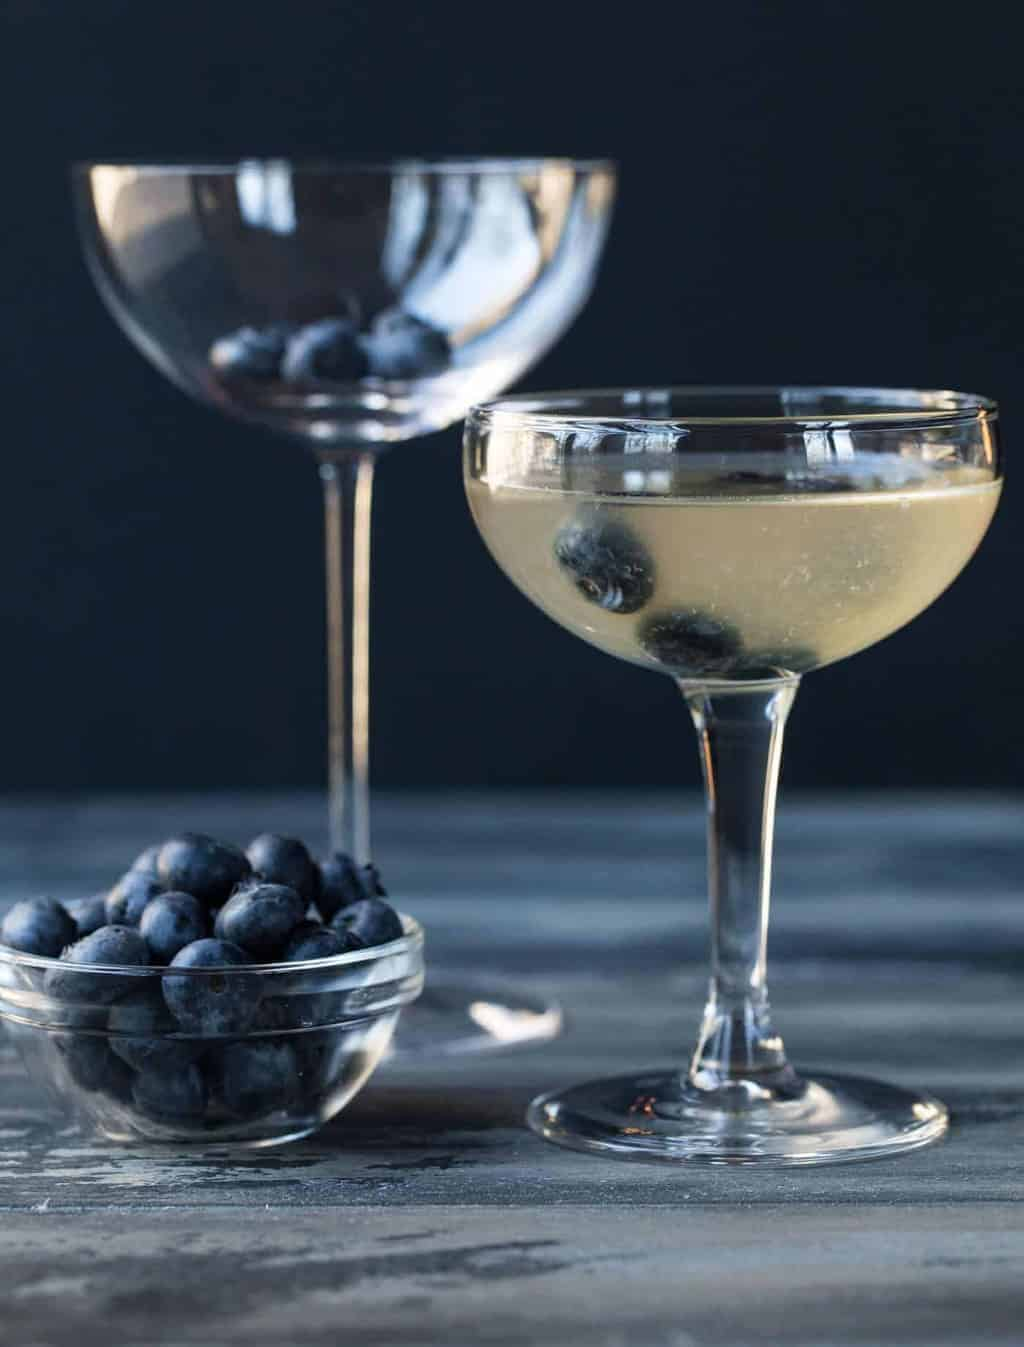 Blueberry Martini in a coupe glass with blueberry floating in it for garnish.